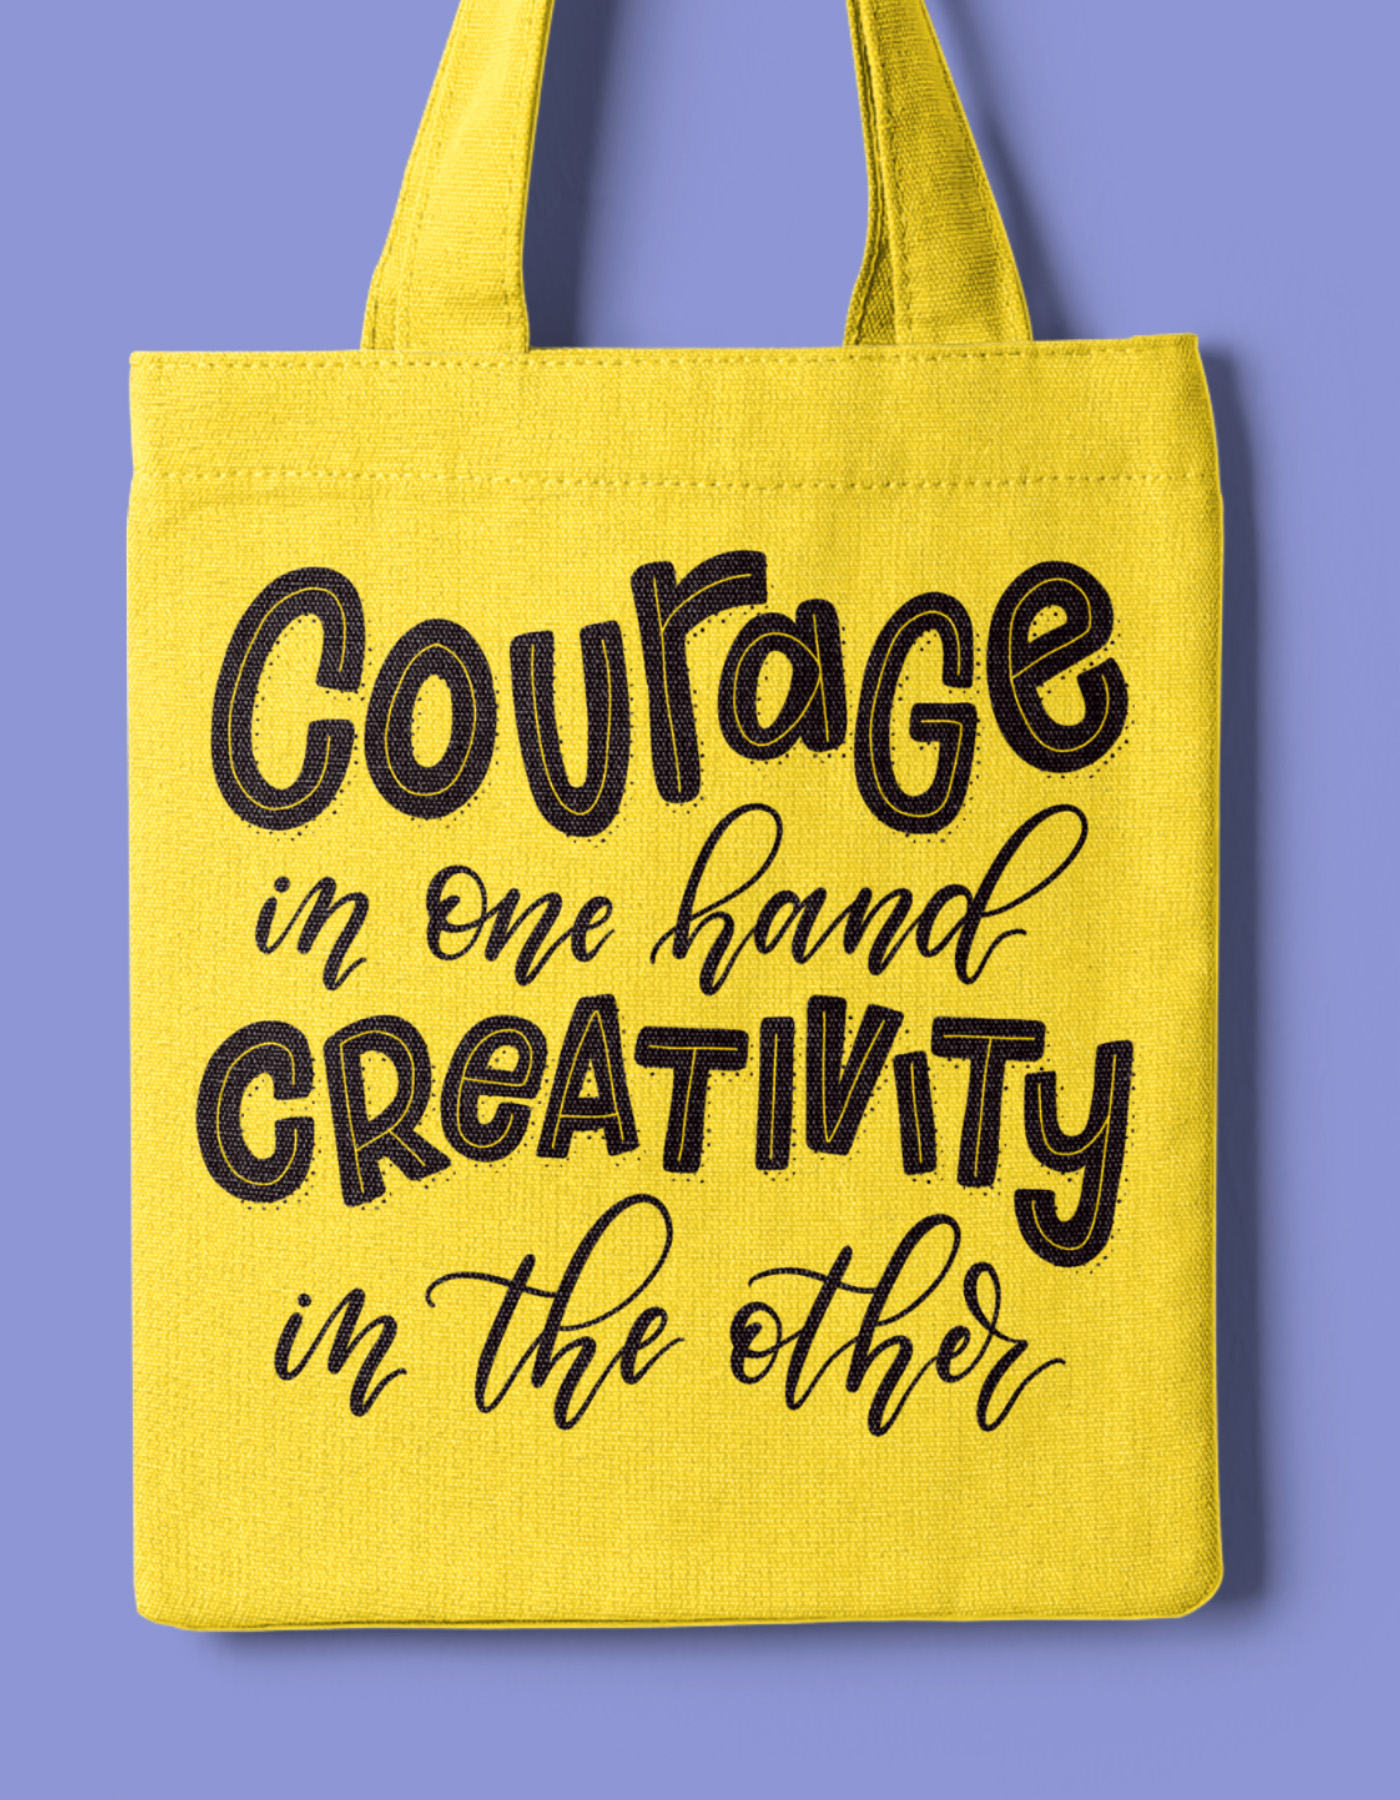 Courage in one hand tote bag mockup